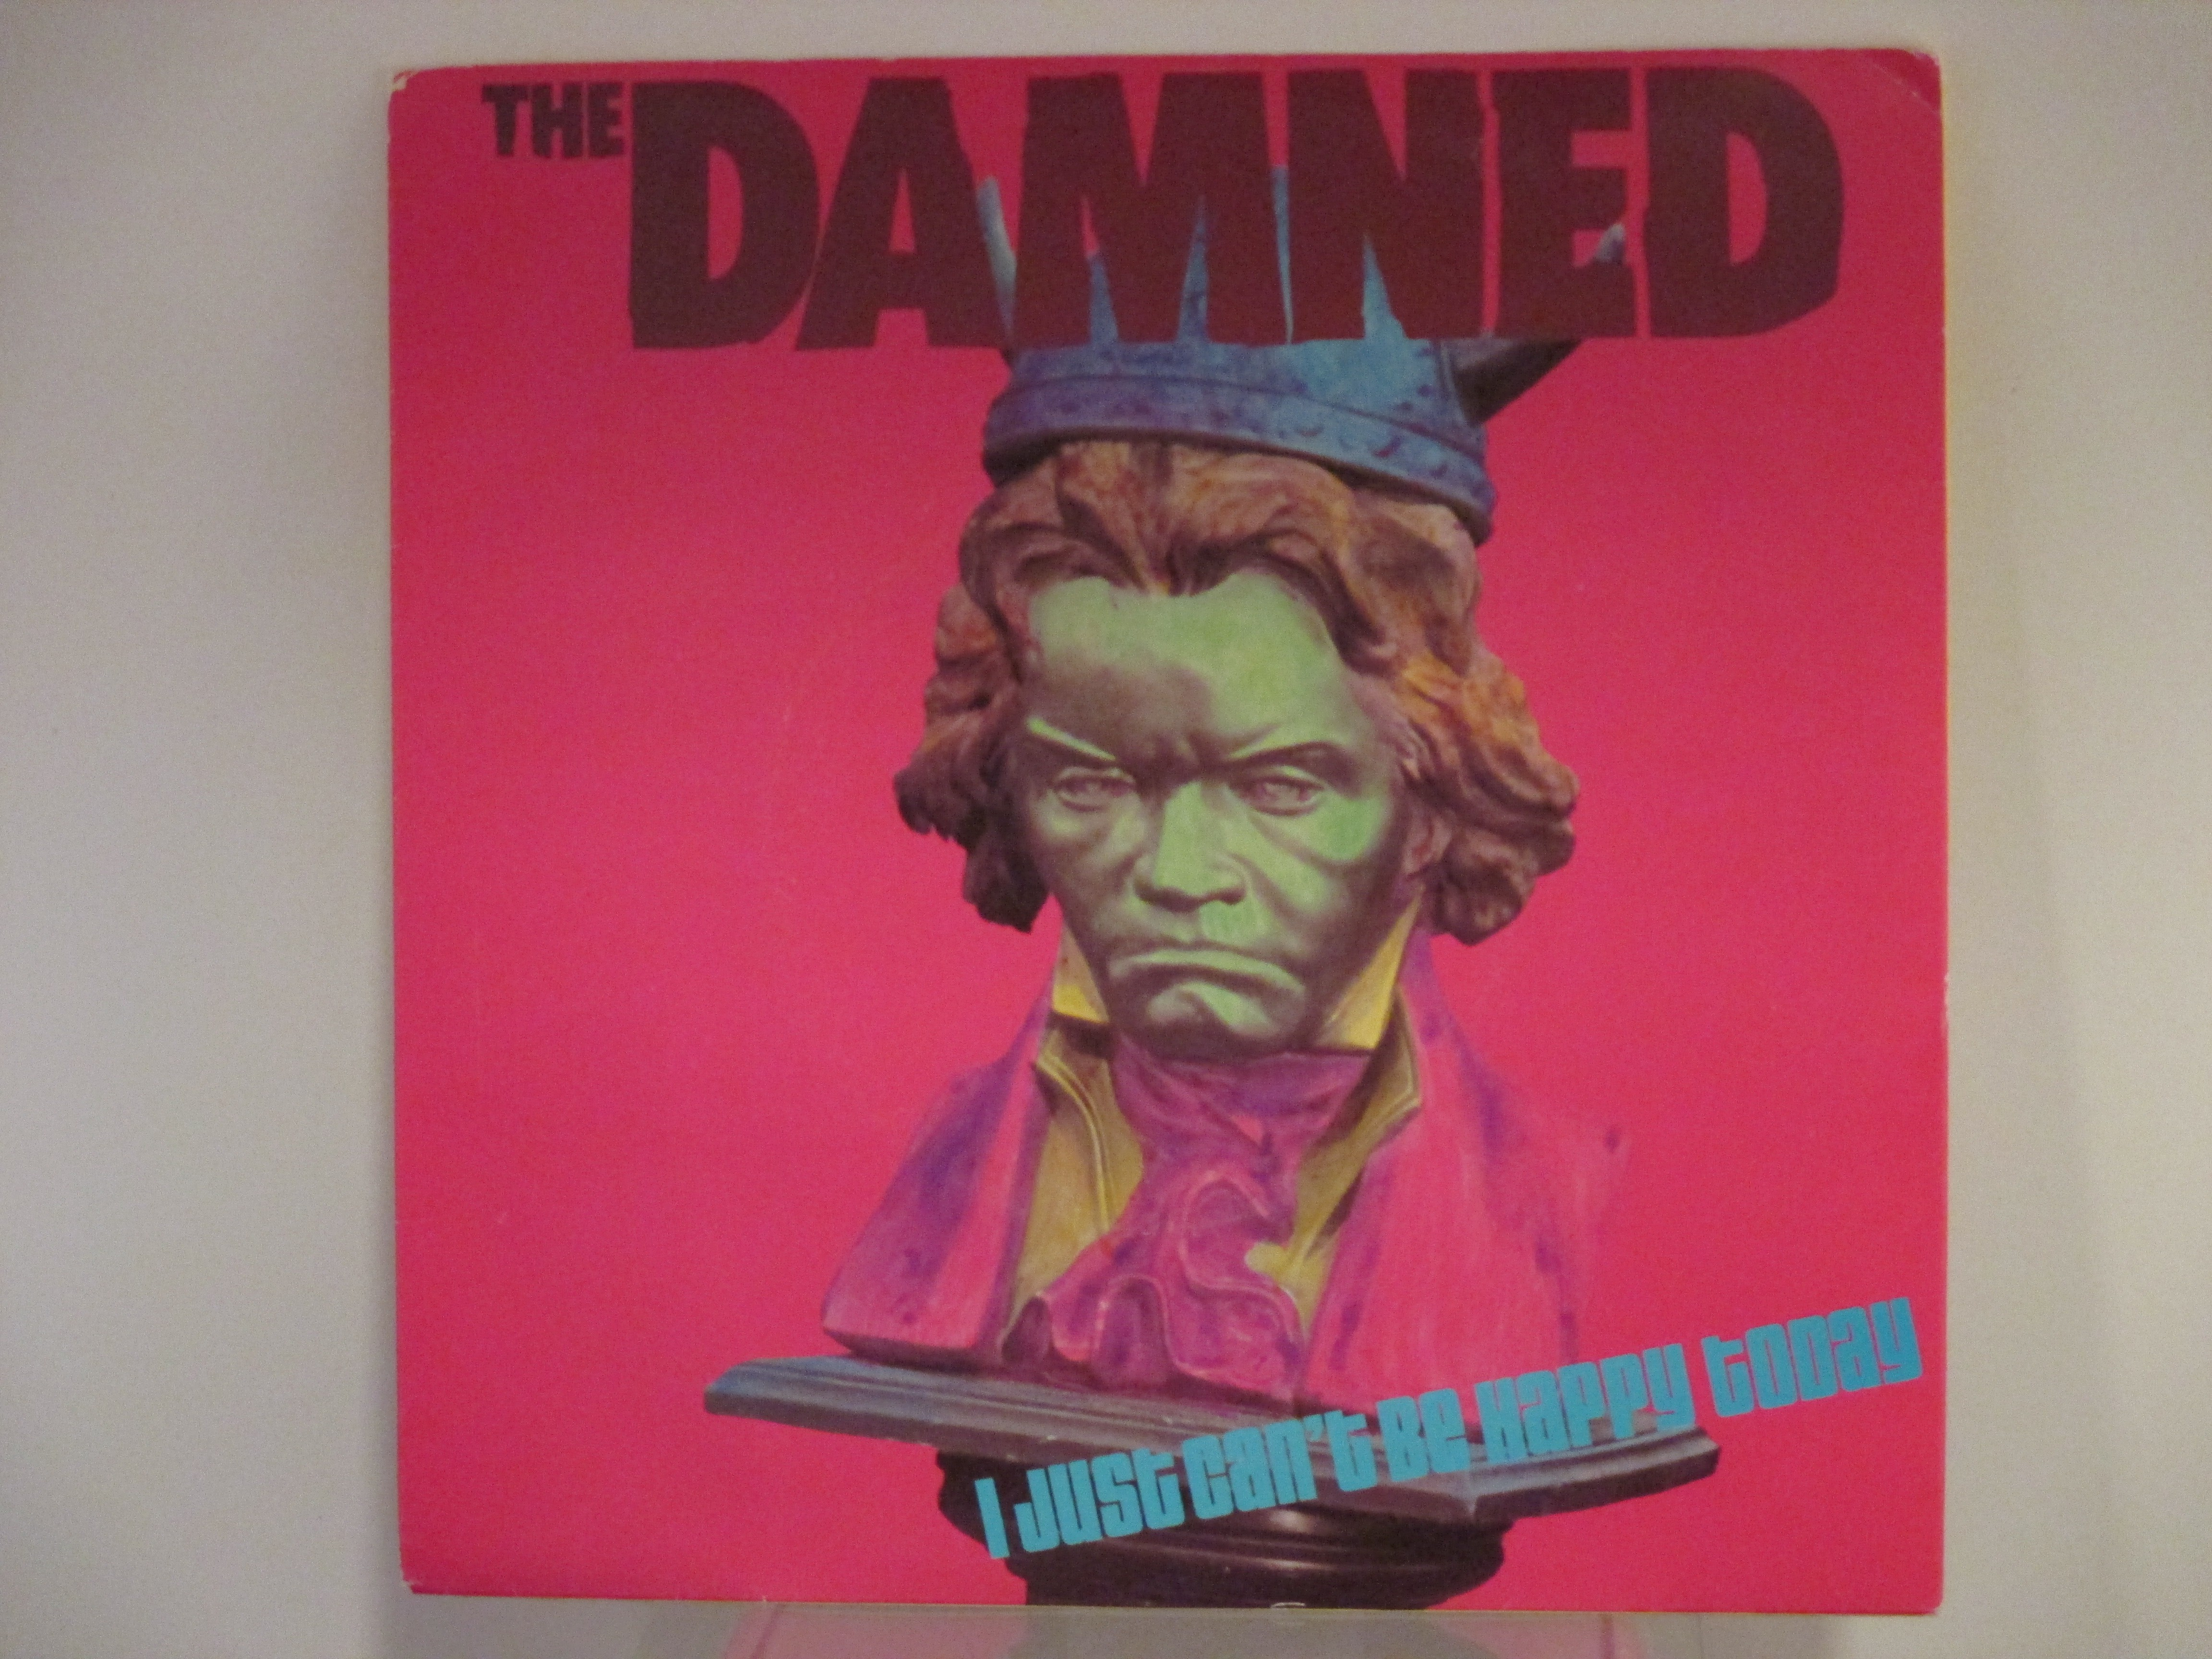 DAMNED : I just can't be happy today / Ballroom blitz